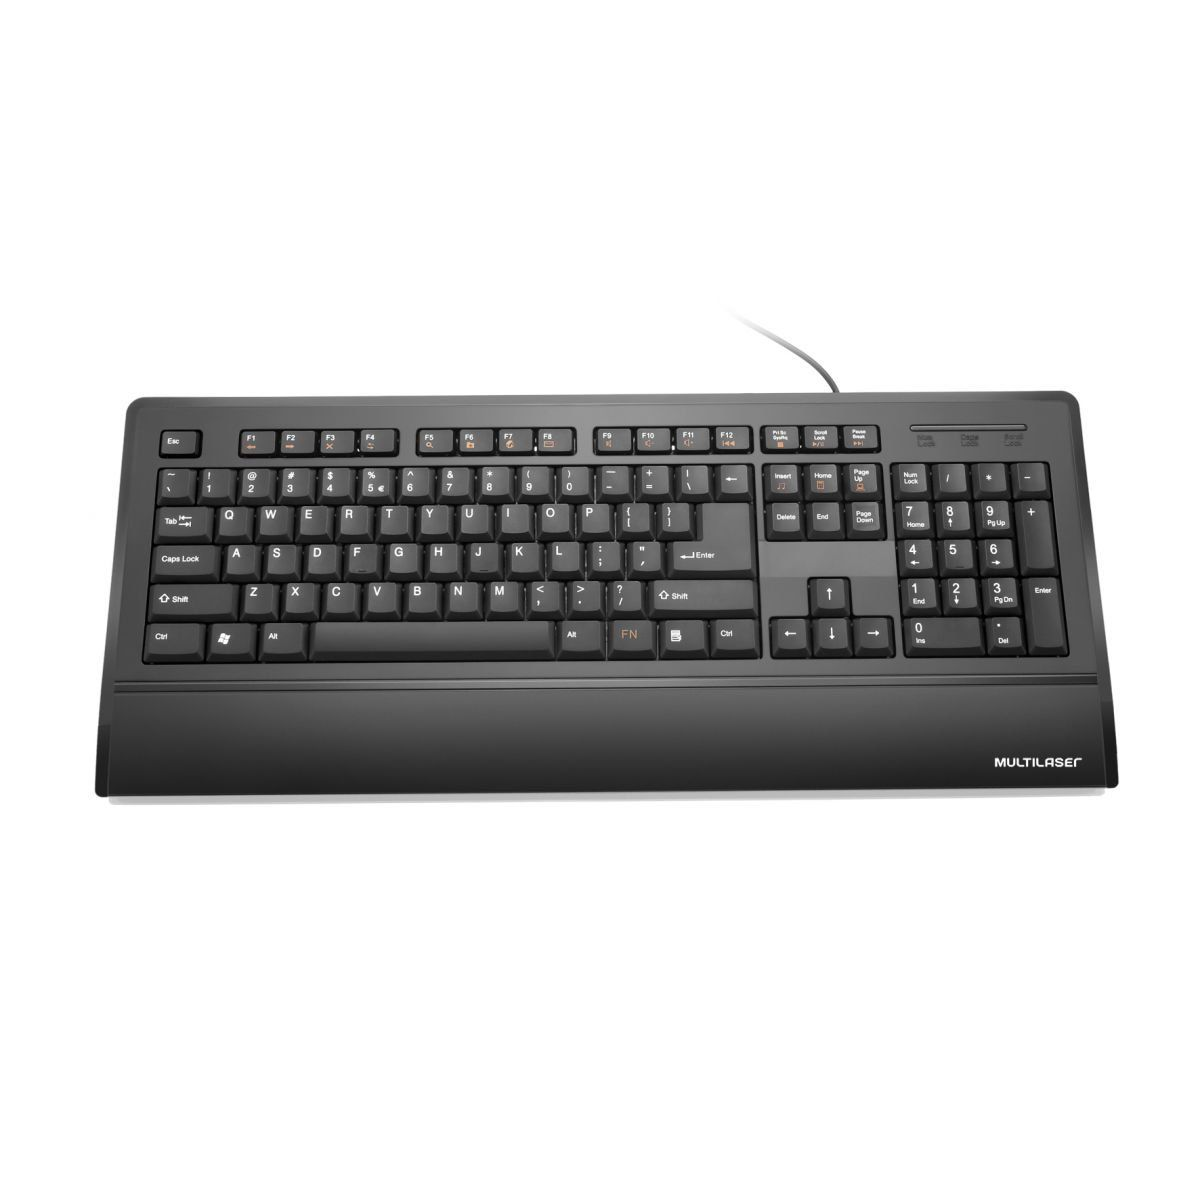 Teclado Super Multimidia Multilaser Slim Preto Tc128